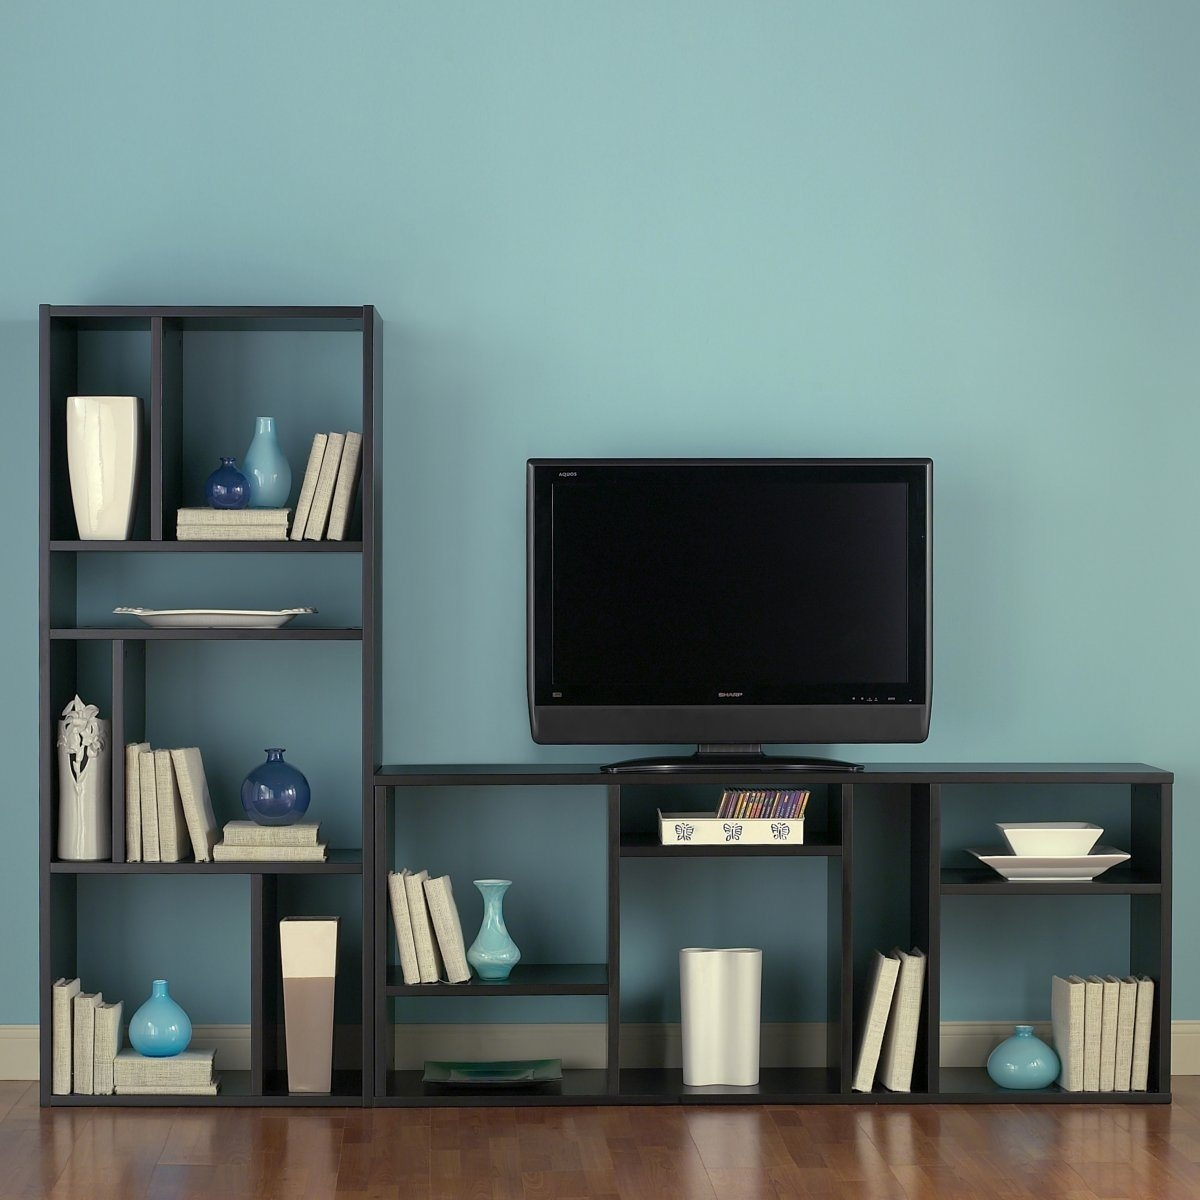 Tv Stand With Bookshelves Idi Design With Regard To Bookcase Tv Stand (#13 of 15)